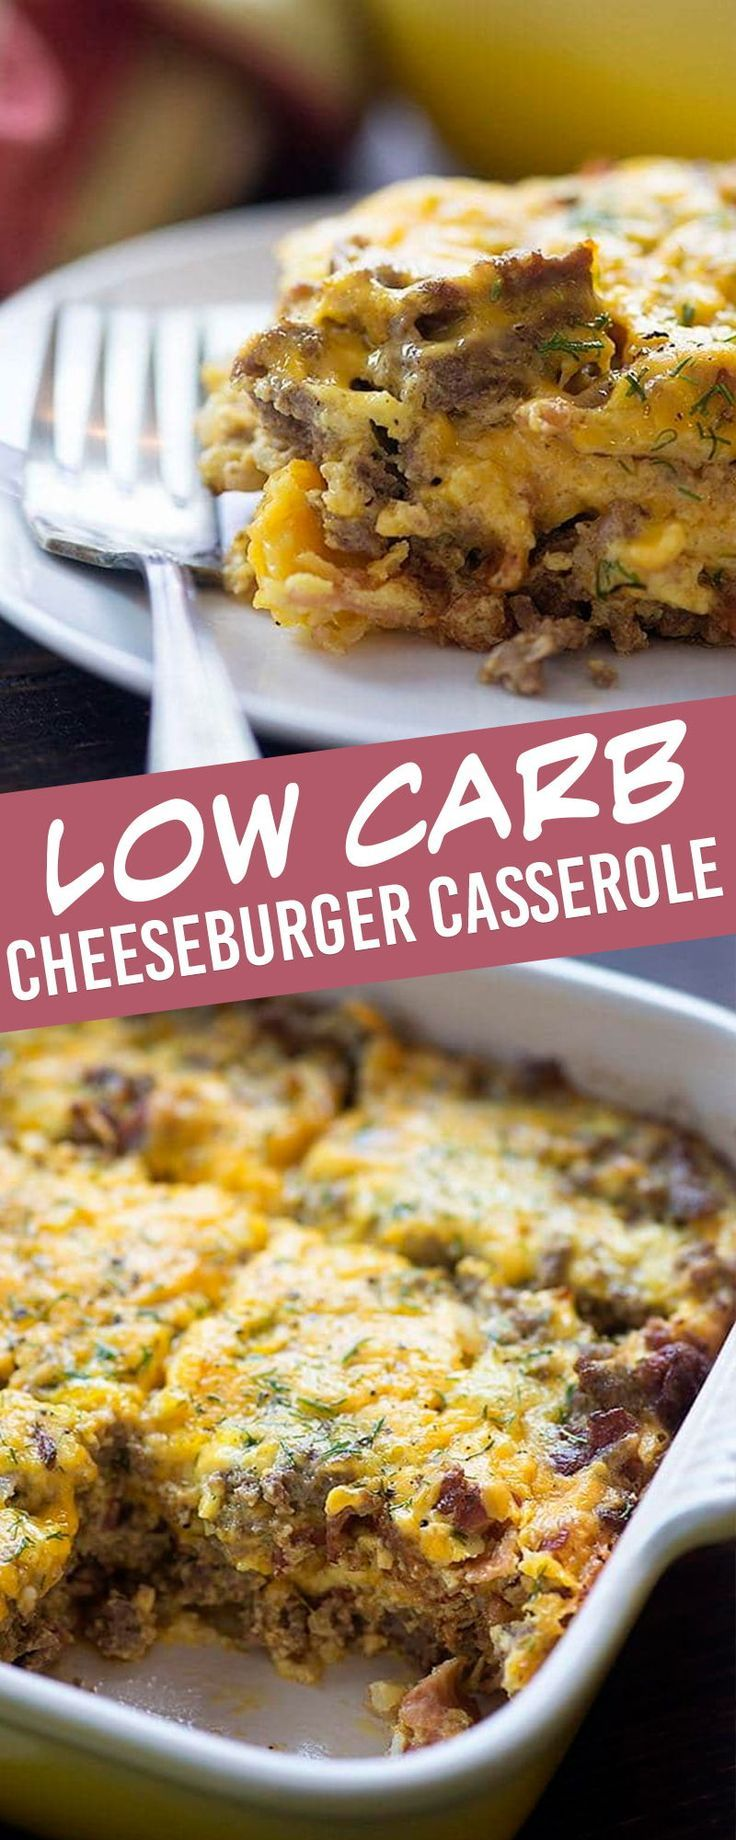 Cheeseburger Casserole A Low Carb Version Of A Family Favorite Recipe Cheeseburger Casserole Recipes Bacon Cheeseburger Casserole